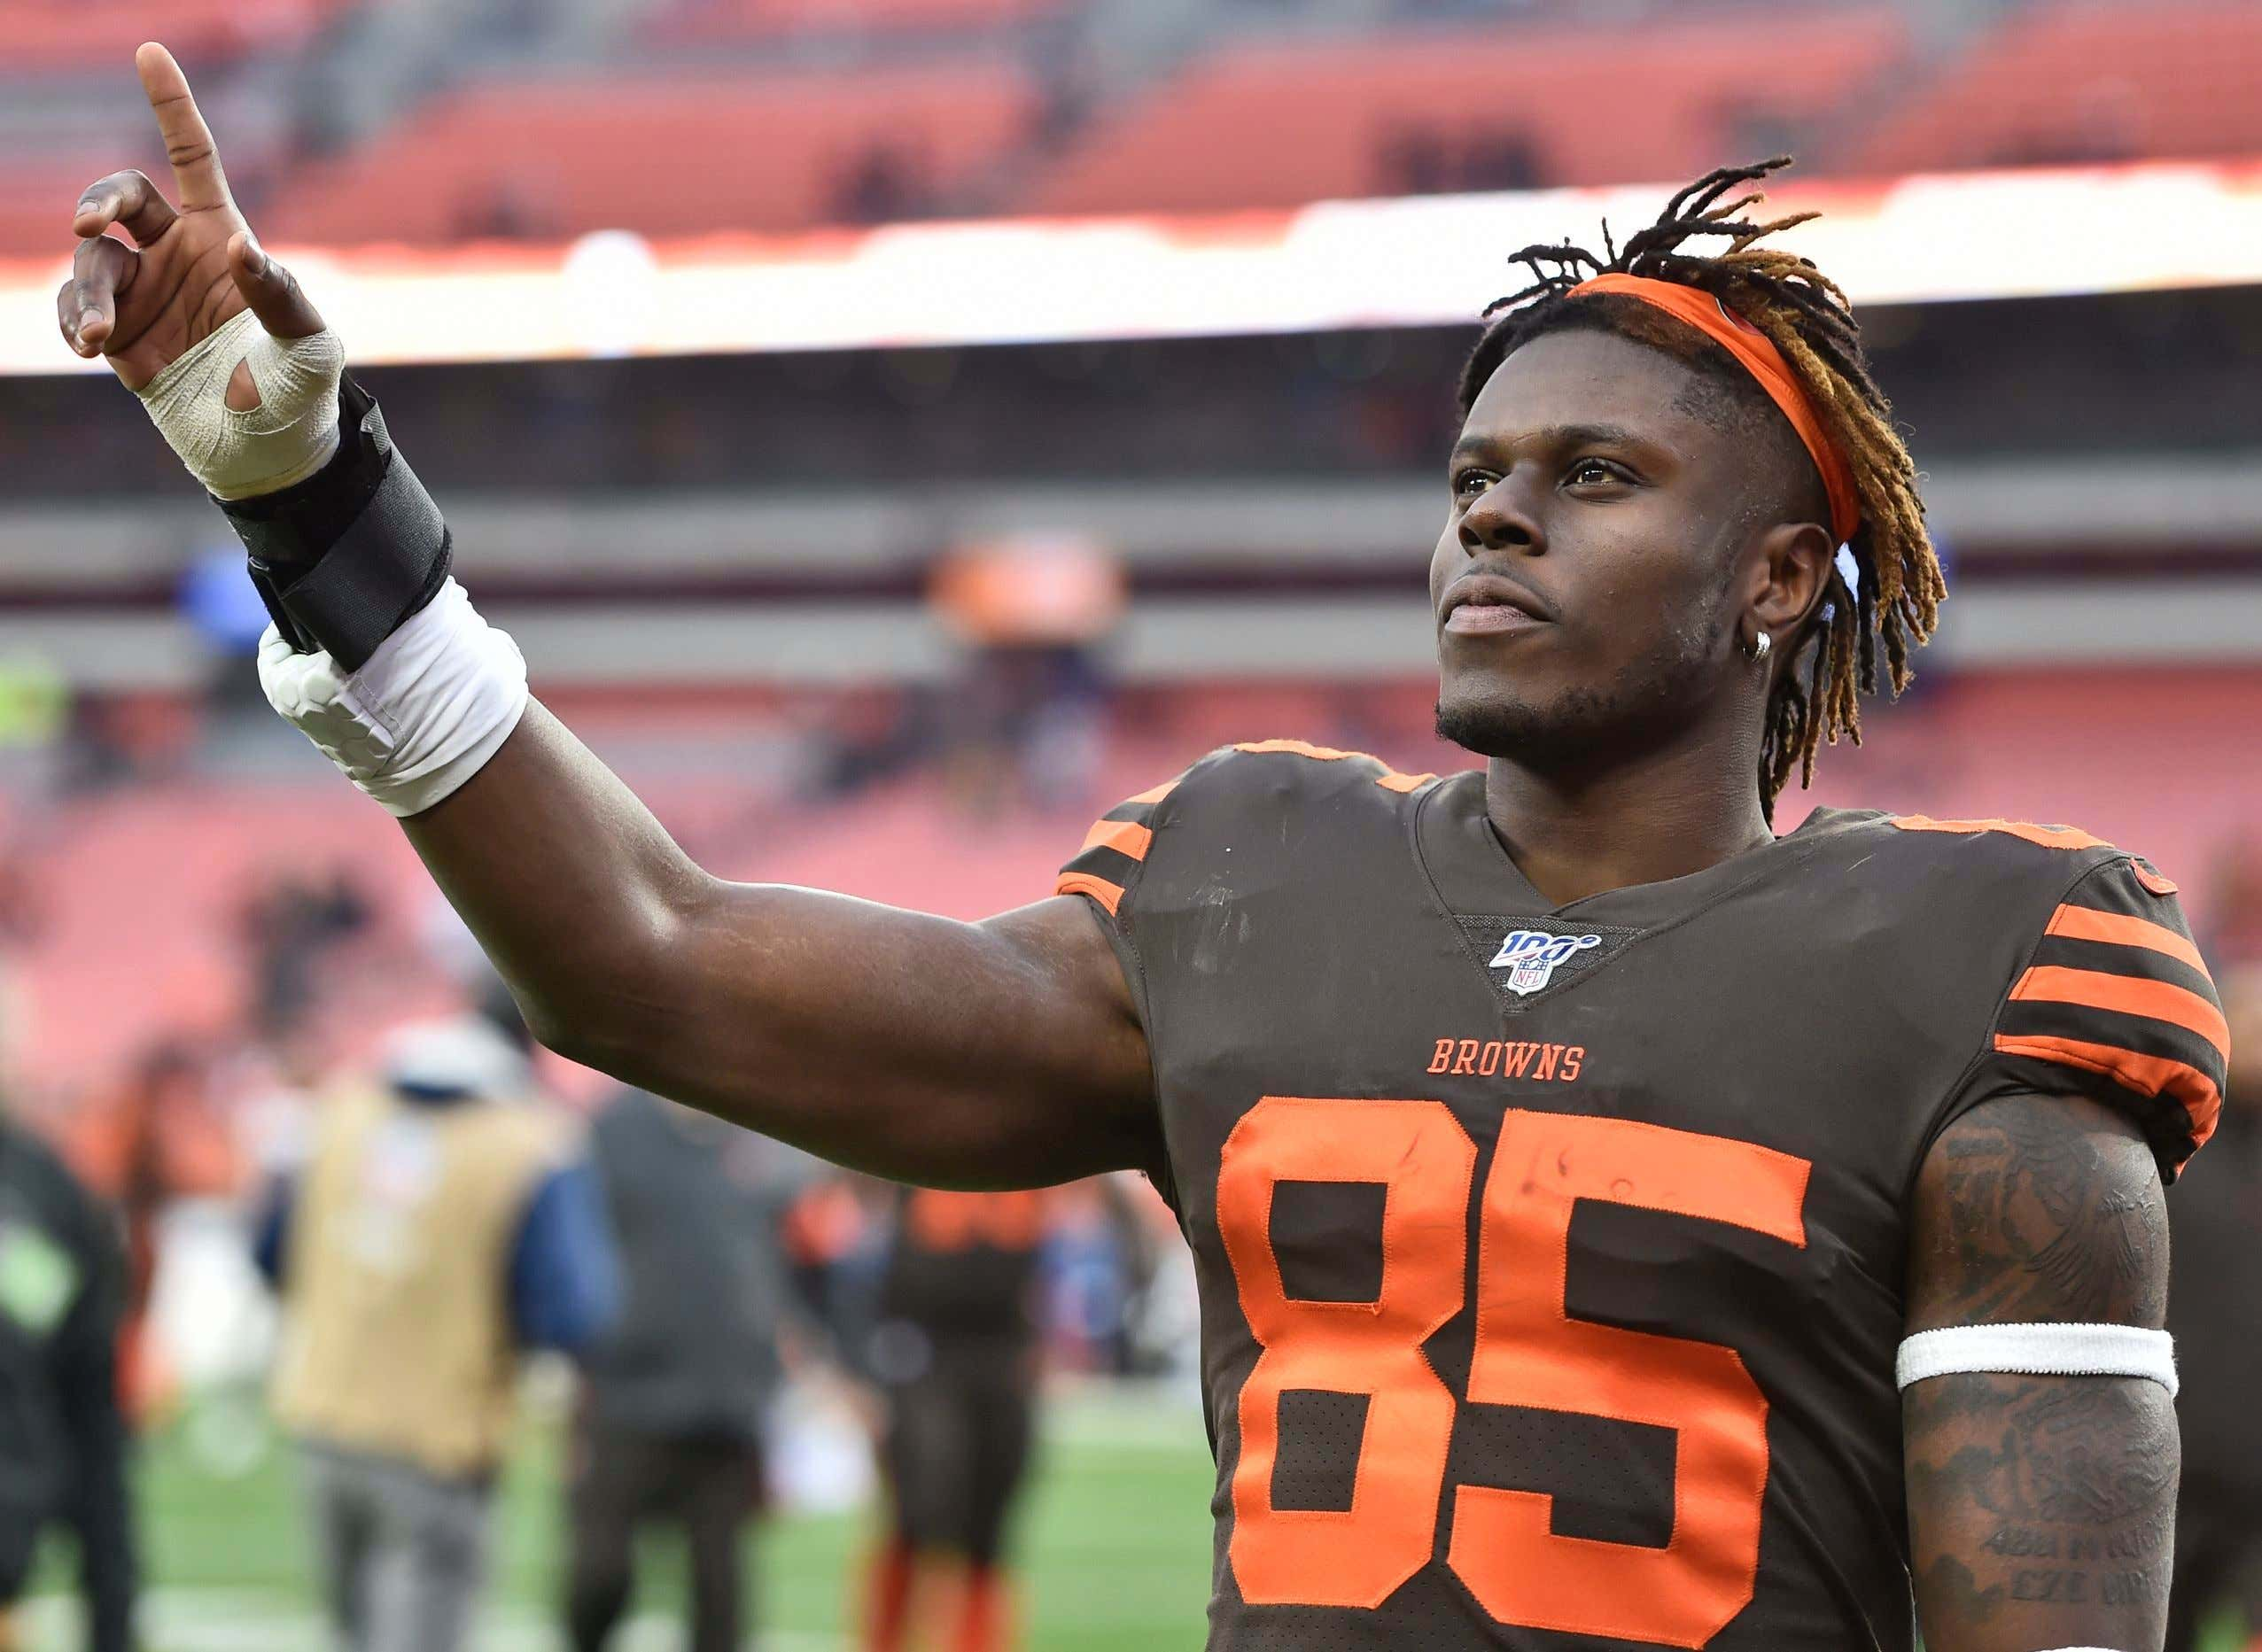 Cleveland Browns tight end David Njoku celebrates after the Browns defeated the Cincinnati Bengals 27-19 in an NFL football game, in Cleveland. The Browns won 27-19